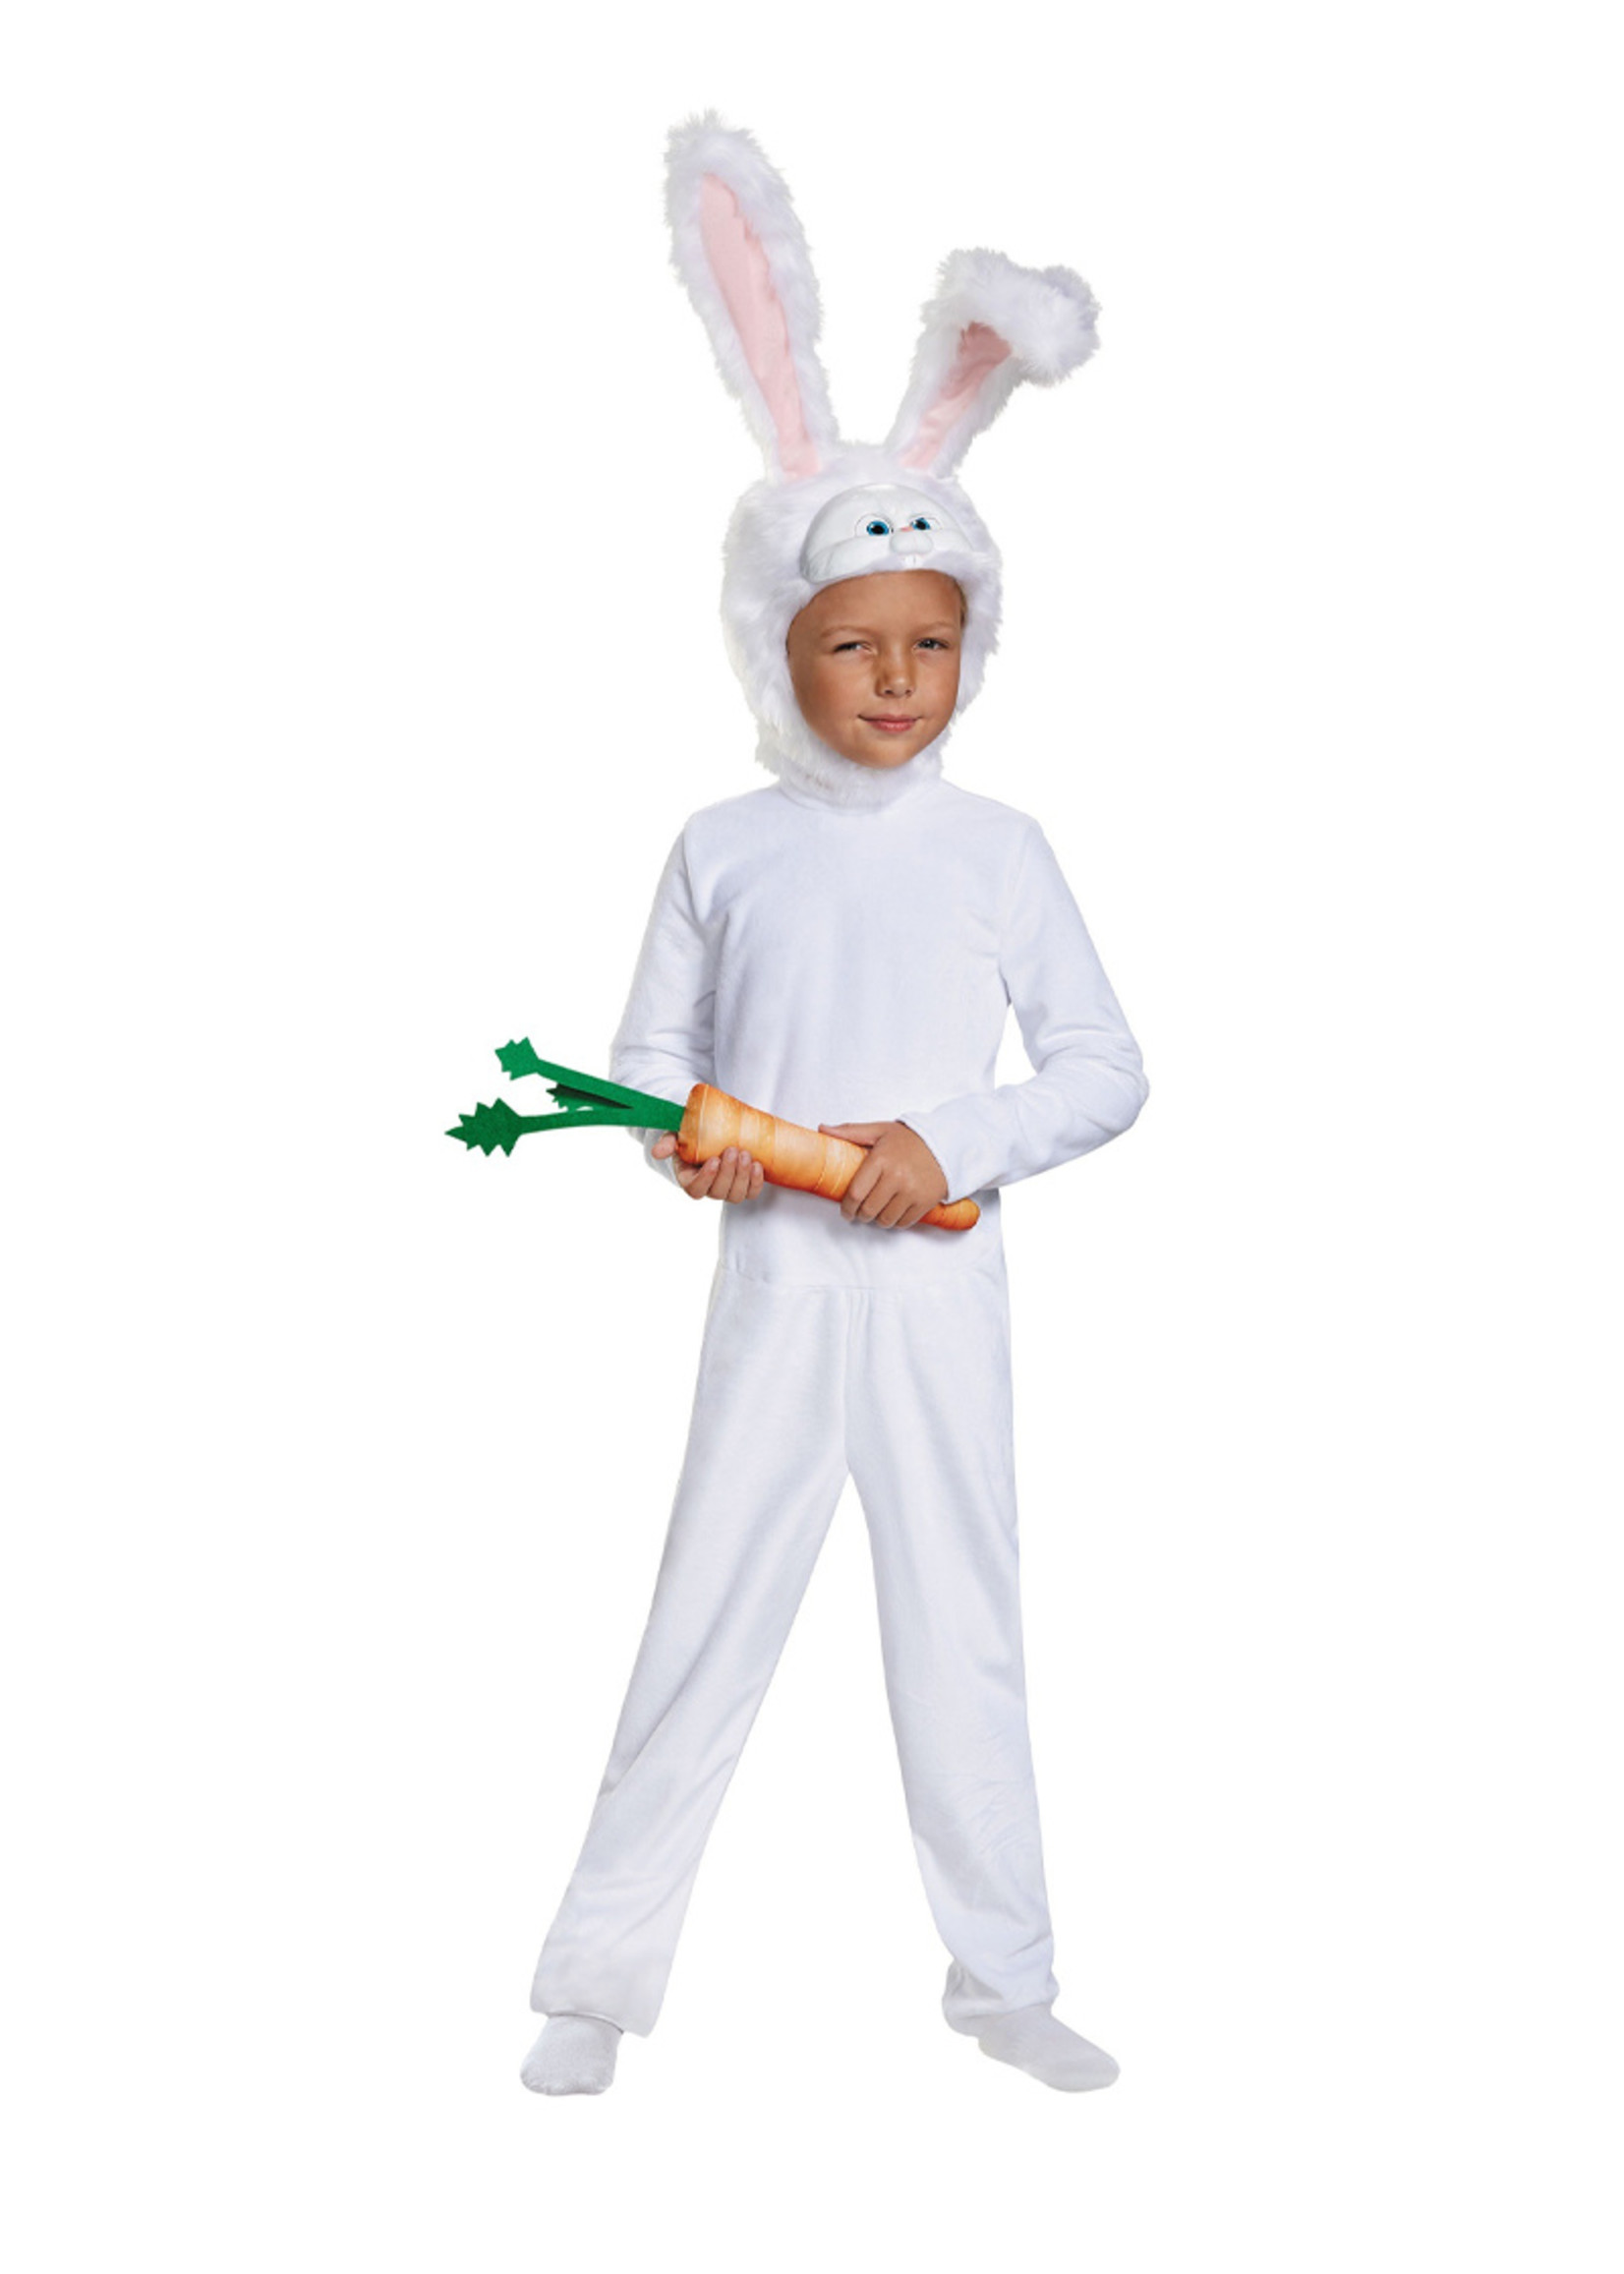 Snowball - The Secret Life of Pets Costume - Boys